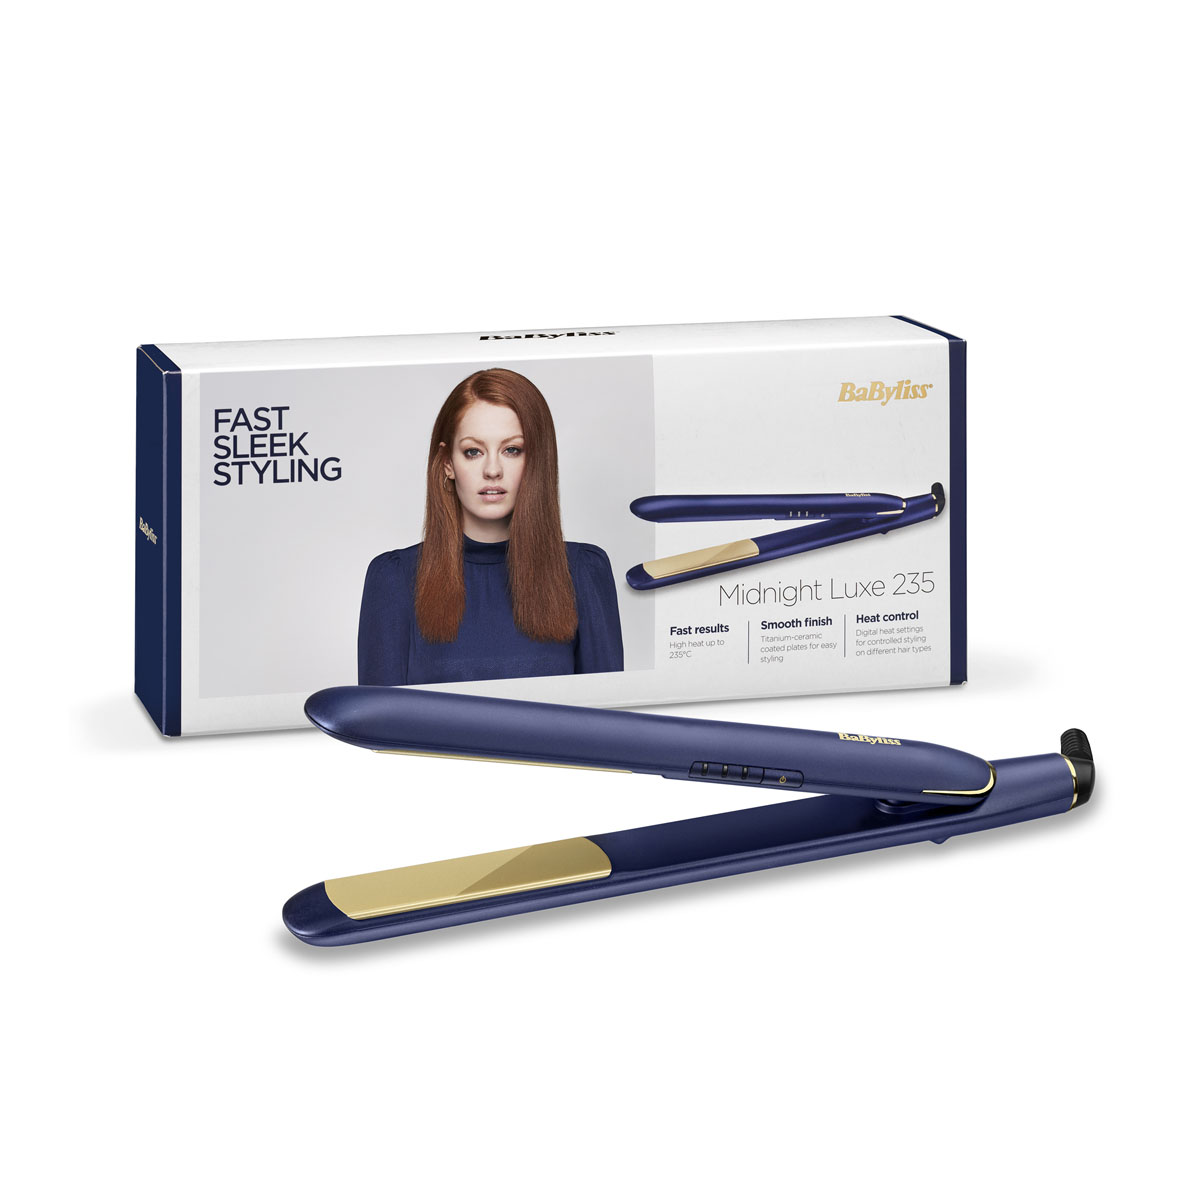 Midnight Luxe 235 Hair Straightener